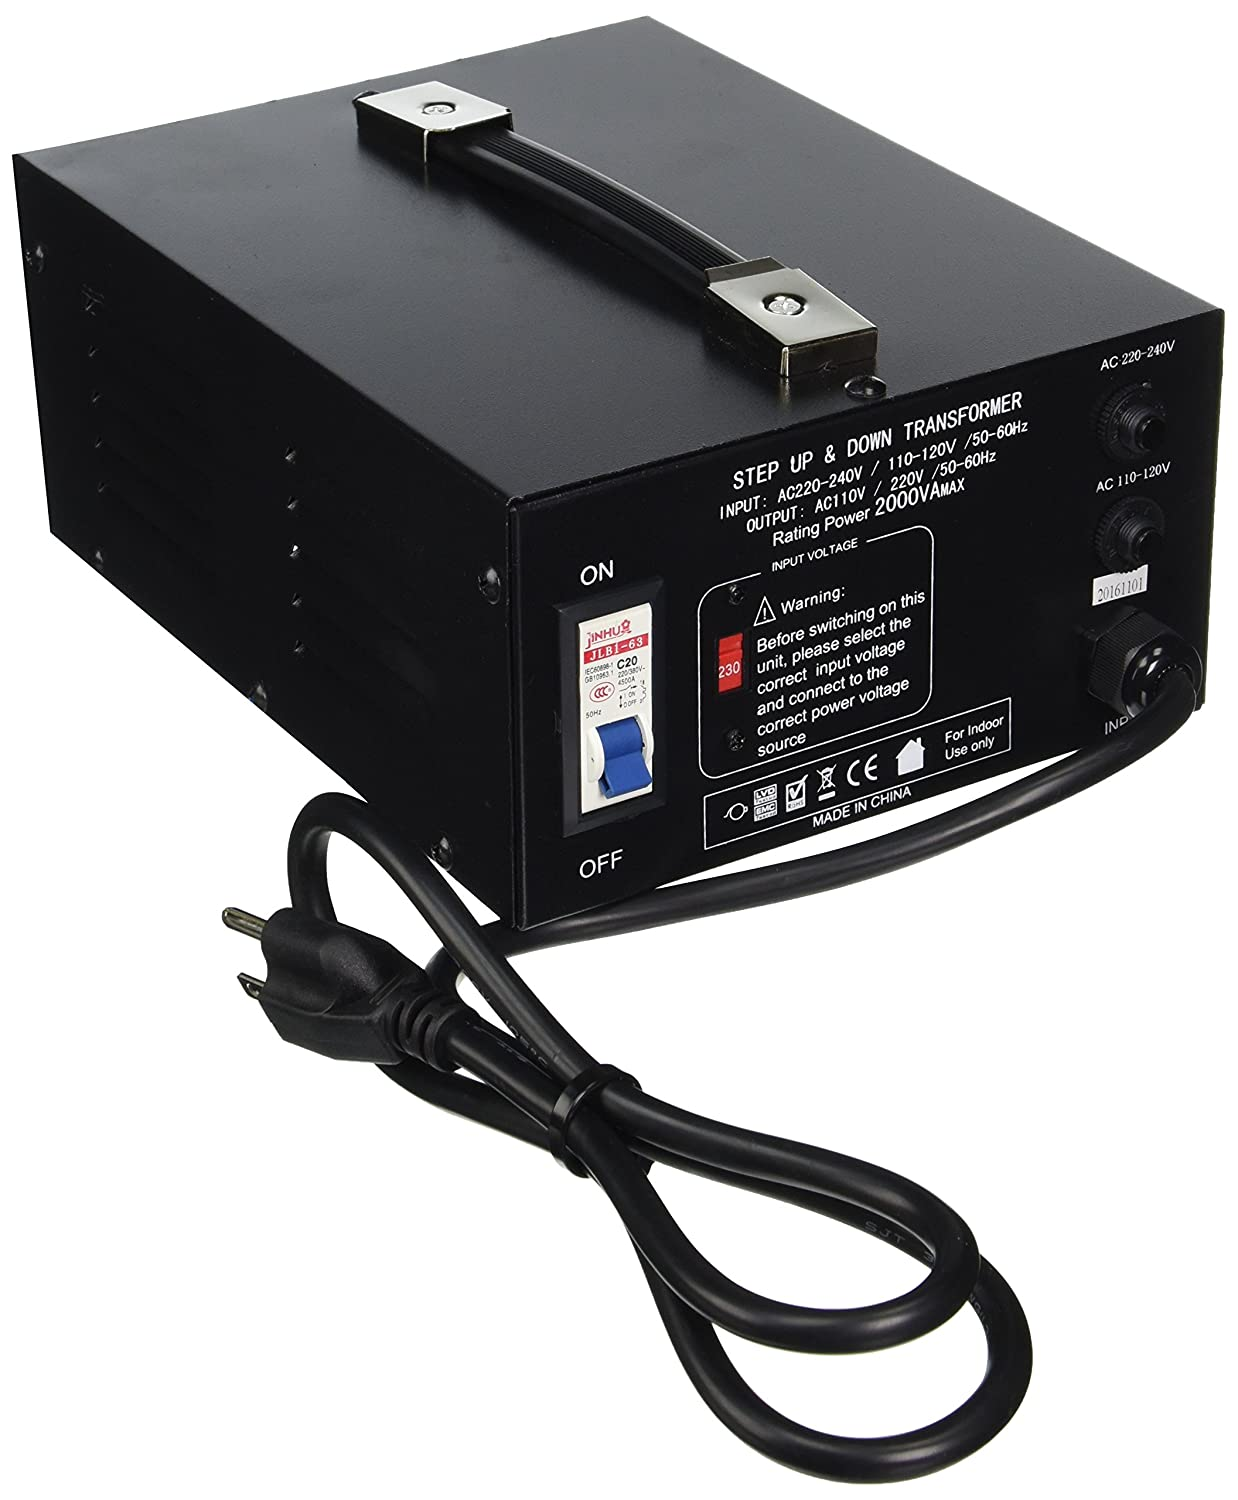 Elc T 5000 Watt Voltage Converter Transformer To Split This Into A 120v And 220v Circuit Step Up Down 110v Breaker Protection Home Audio Theater